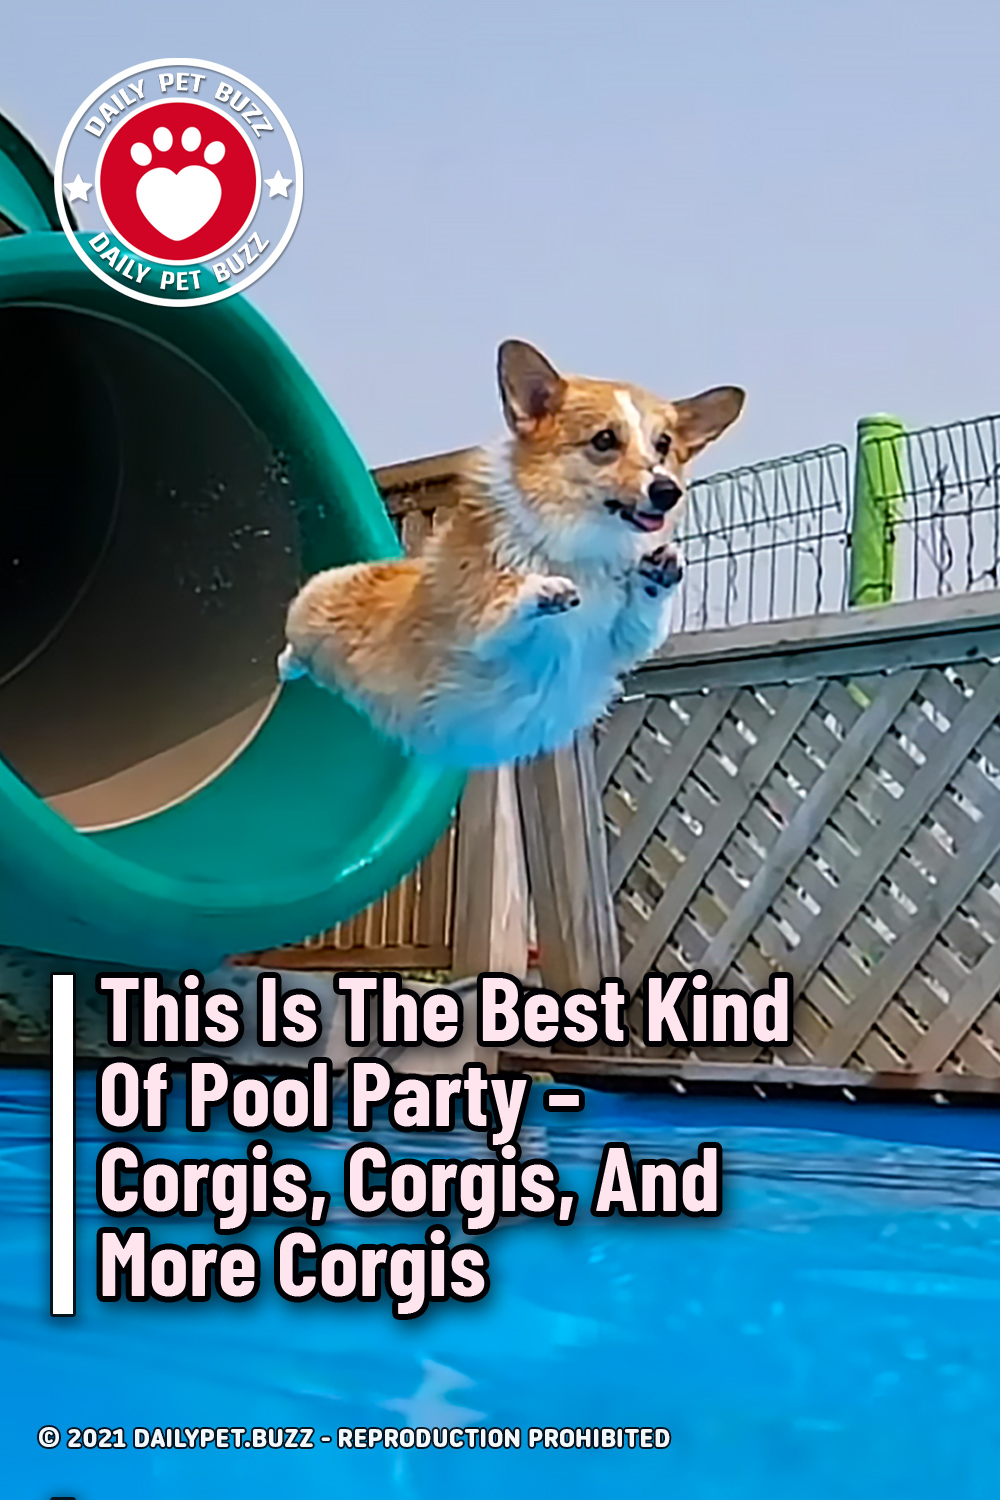 This Is The Best Kind Of Pool Party – Corgis, Corgis, And More Corgis